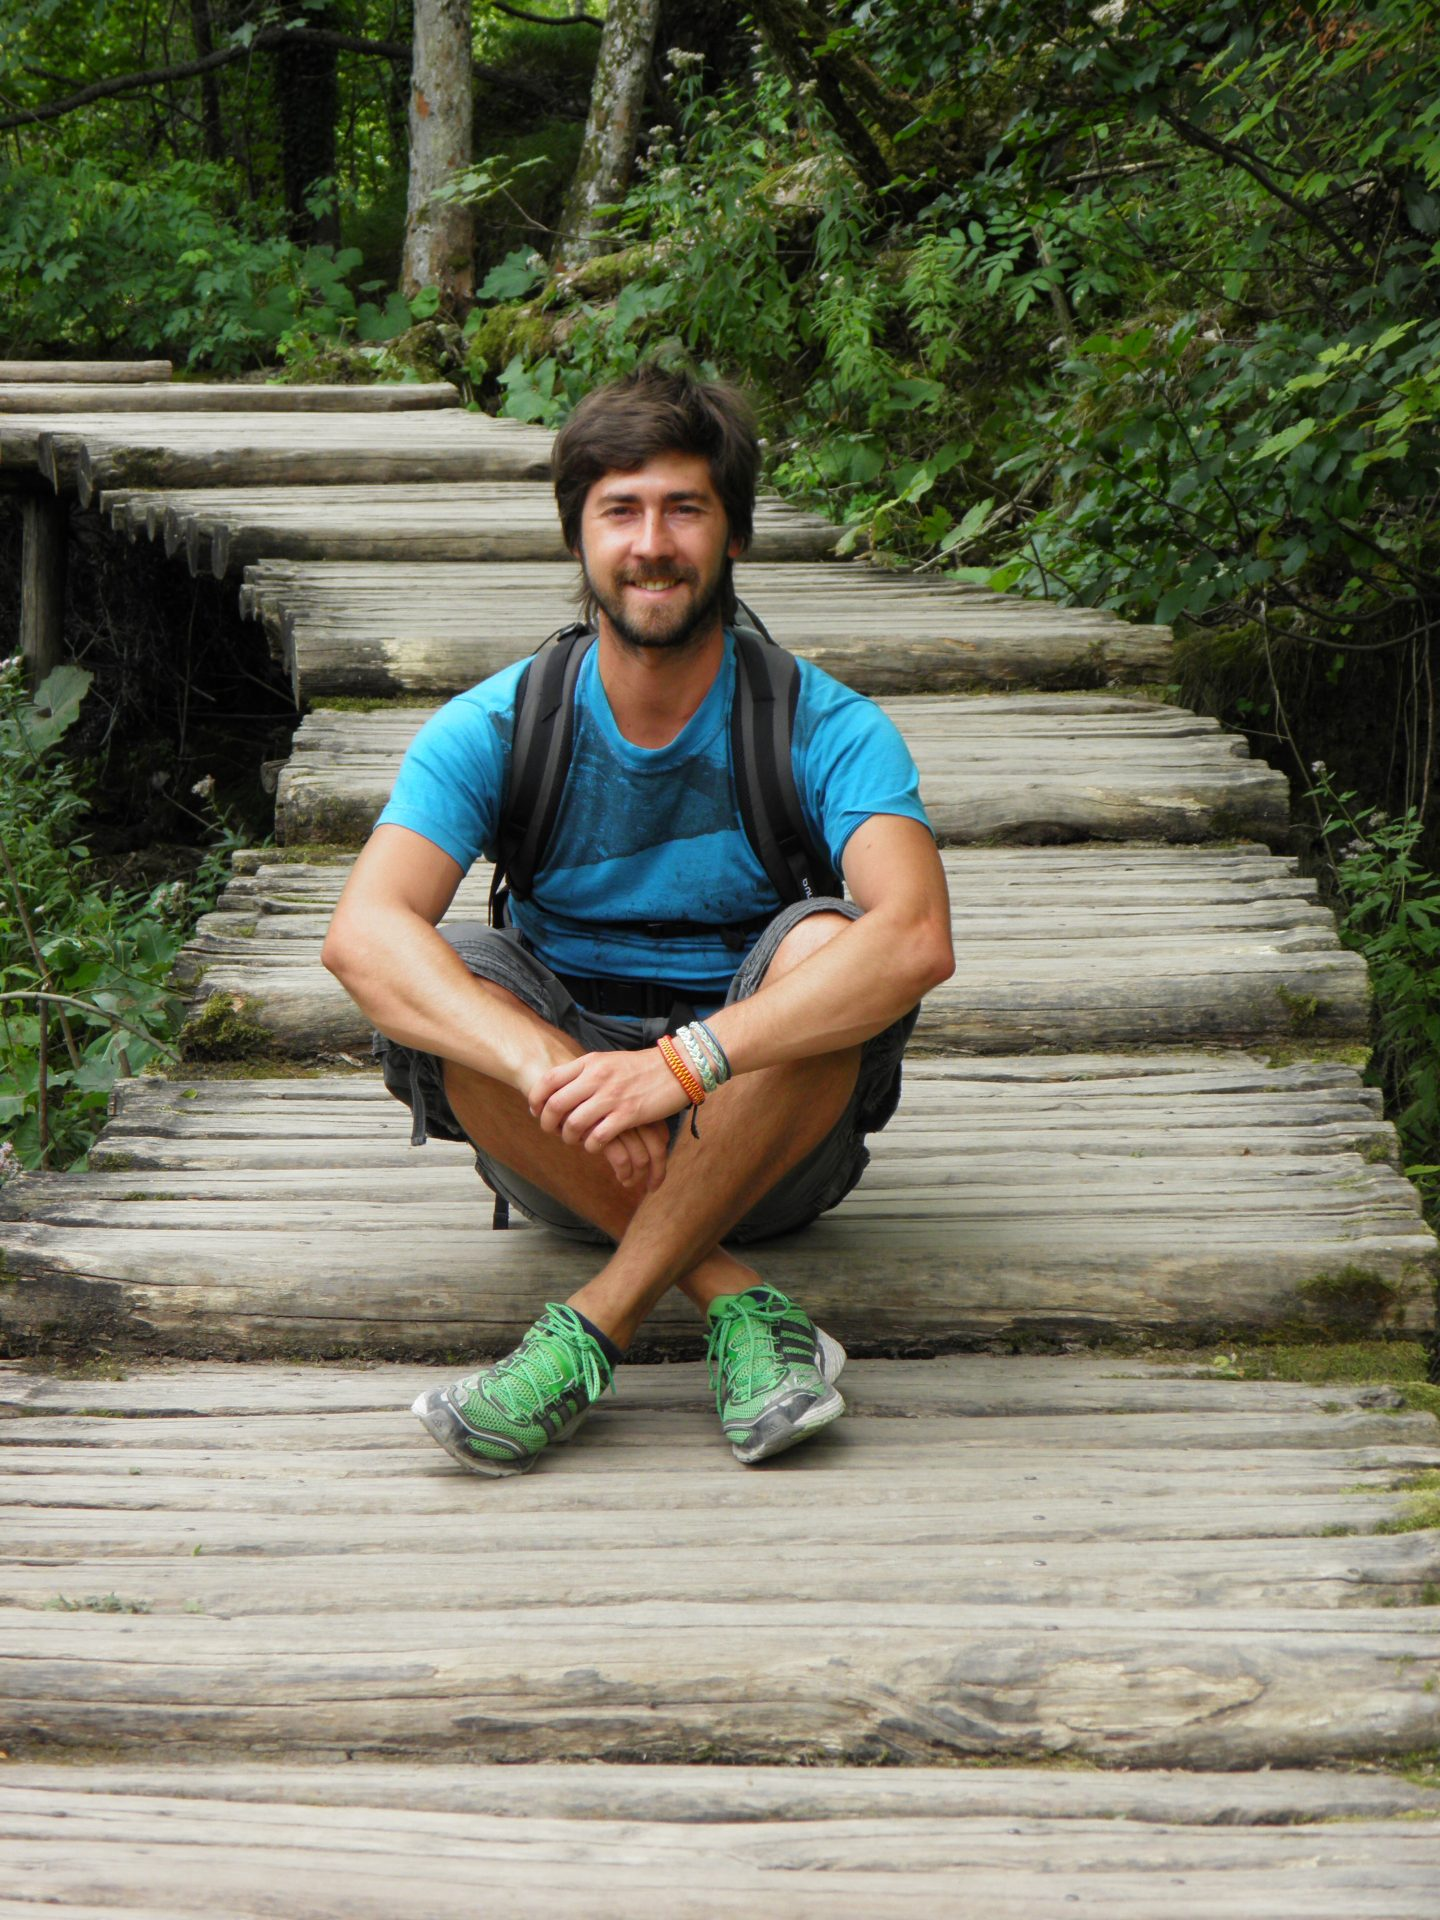 Guy sitting on the stairs smiling into the camera.